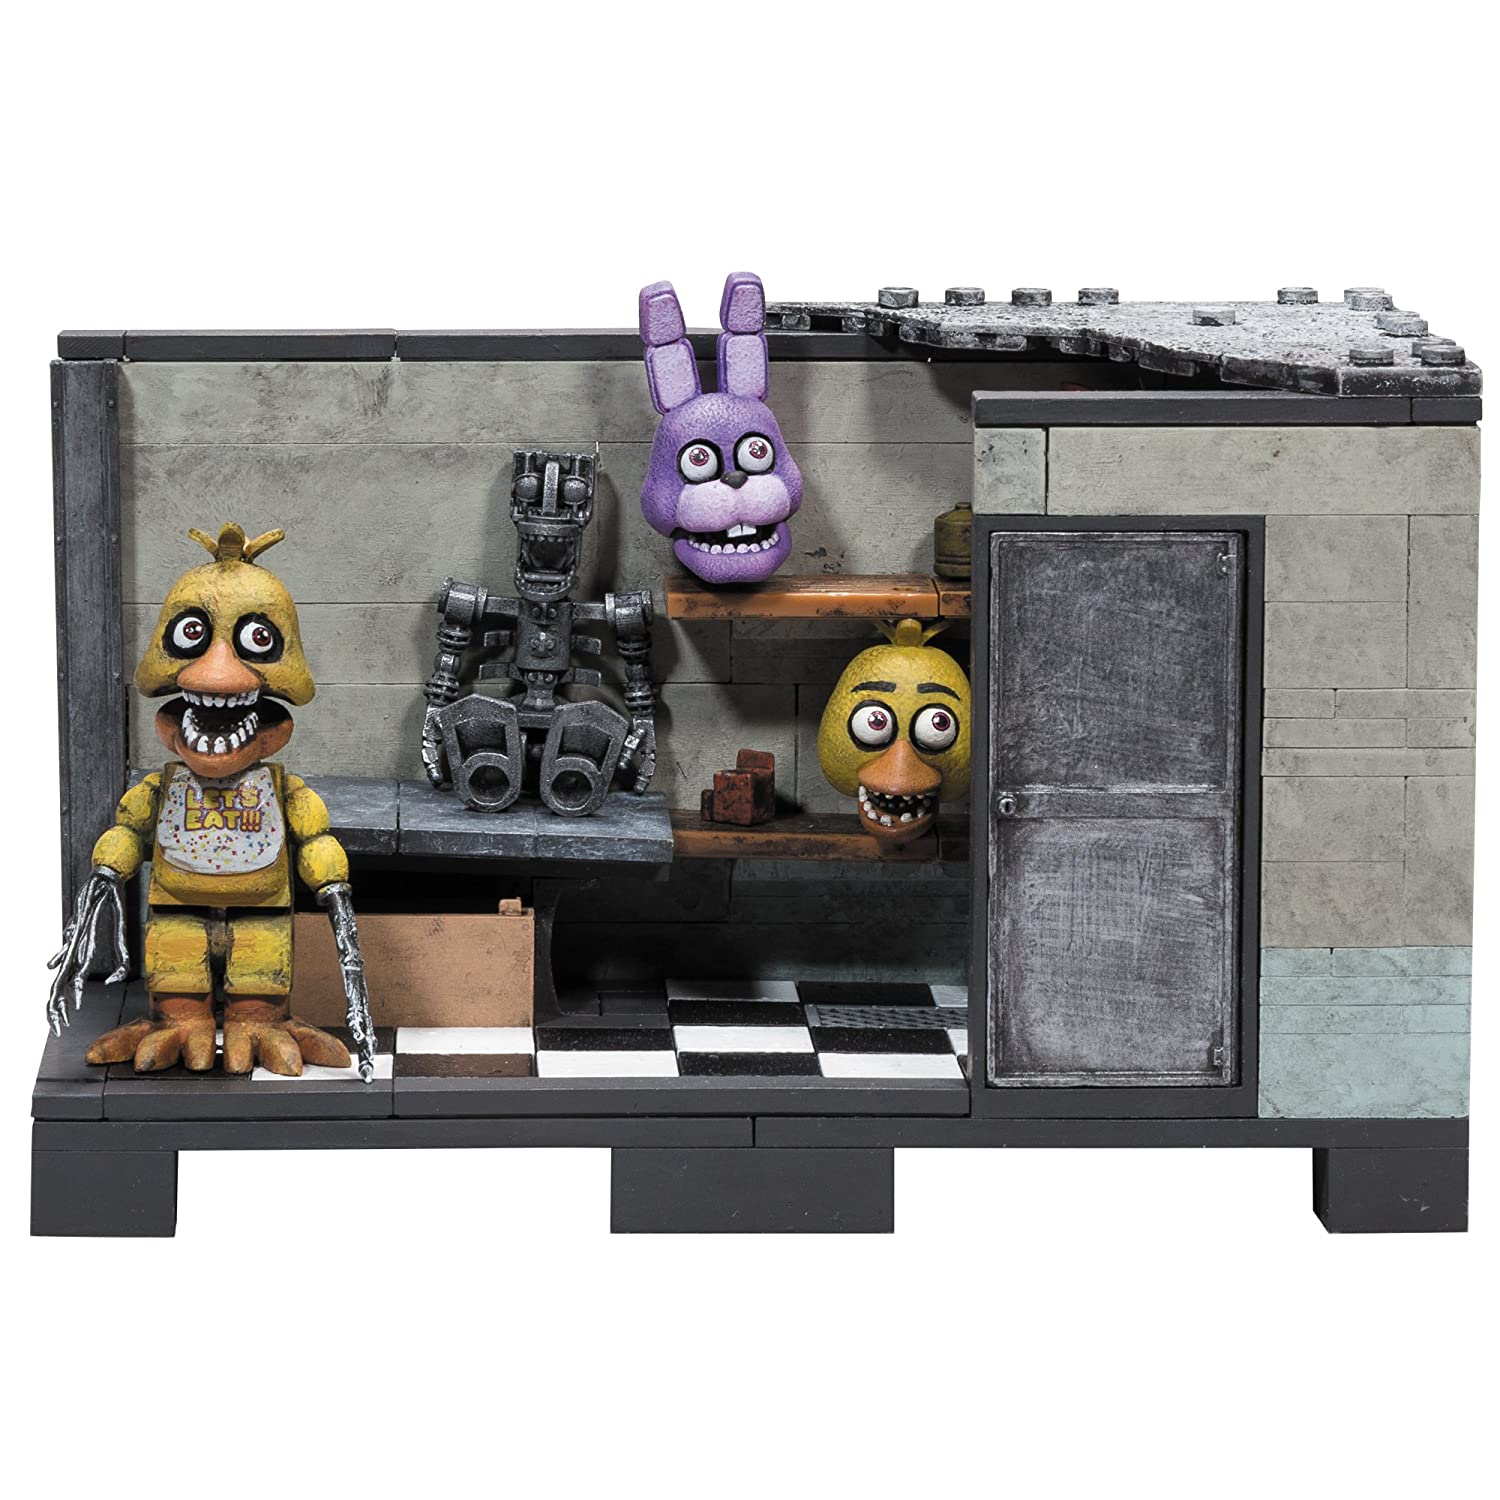 McFarlane Toys Five Nights at Freddy's Backstage 'Classic Series' Medium Construction Set